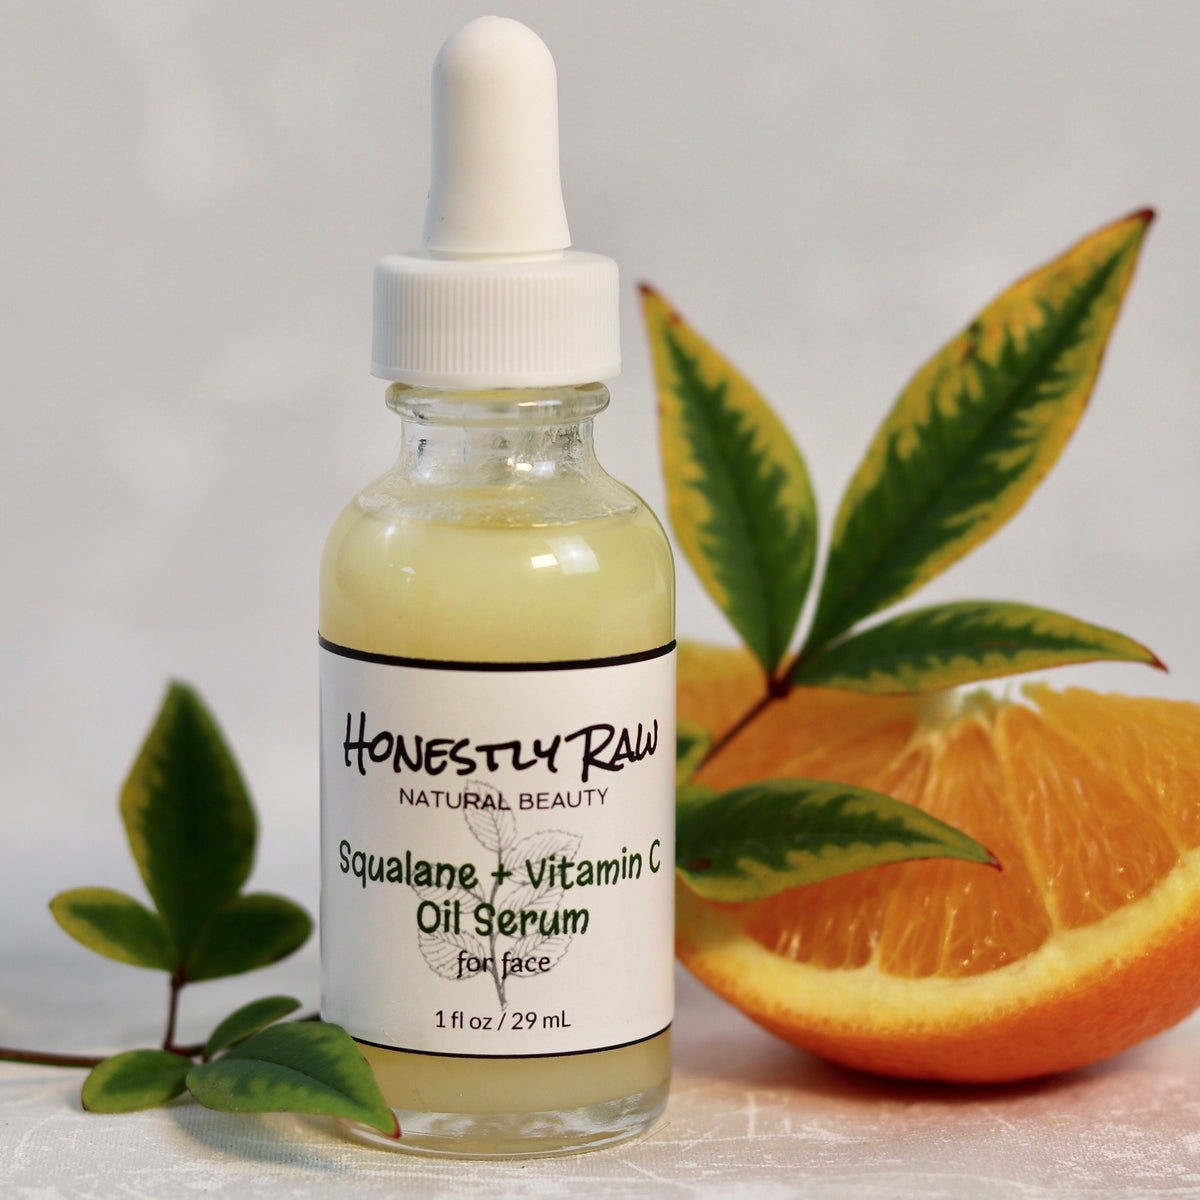 Squalane Vitamin C Oil Serum with leaves and orange slice